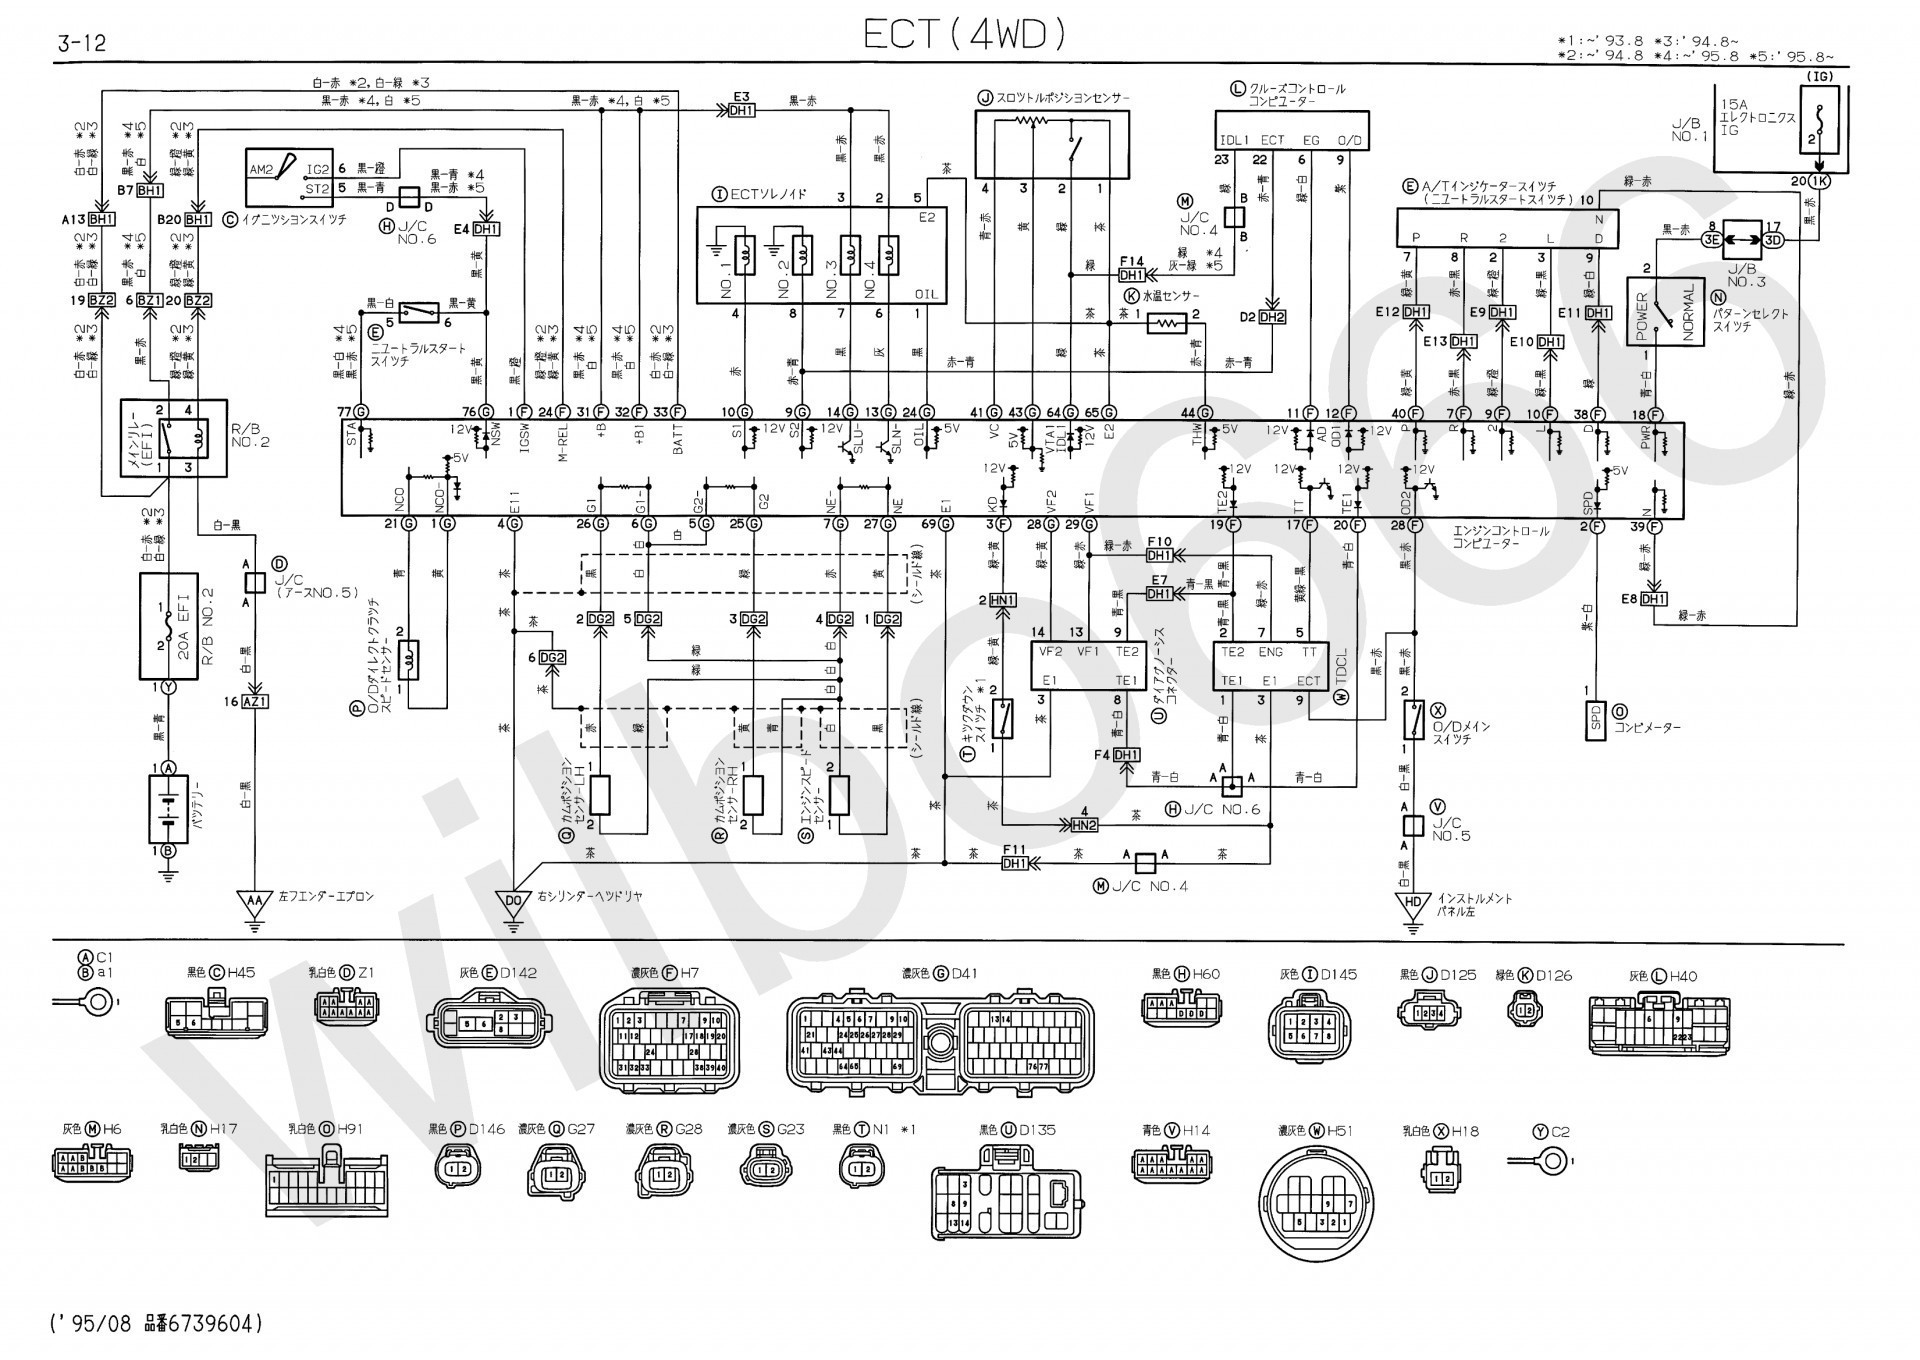 Kohler Engine Wiring Diagram Bmw Engine Diagram Unique L322 Amplifier Wiring Diagram Save Of Kohler Engine Wiring Diagram